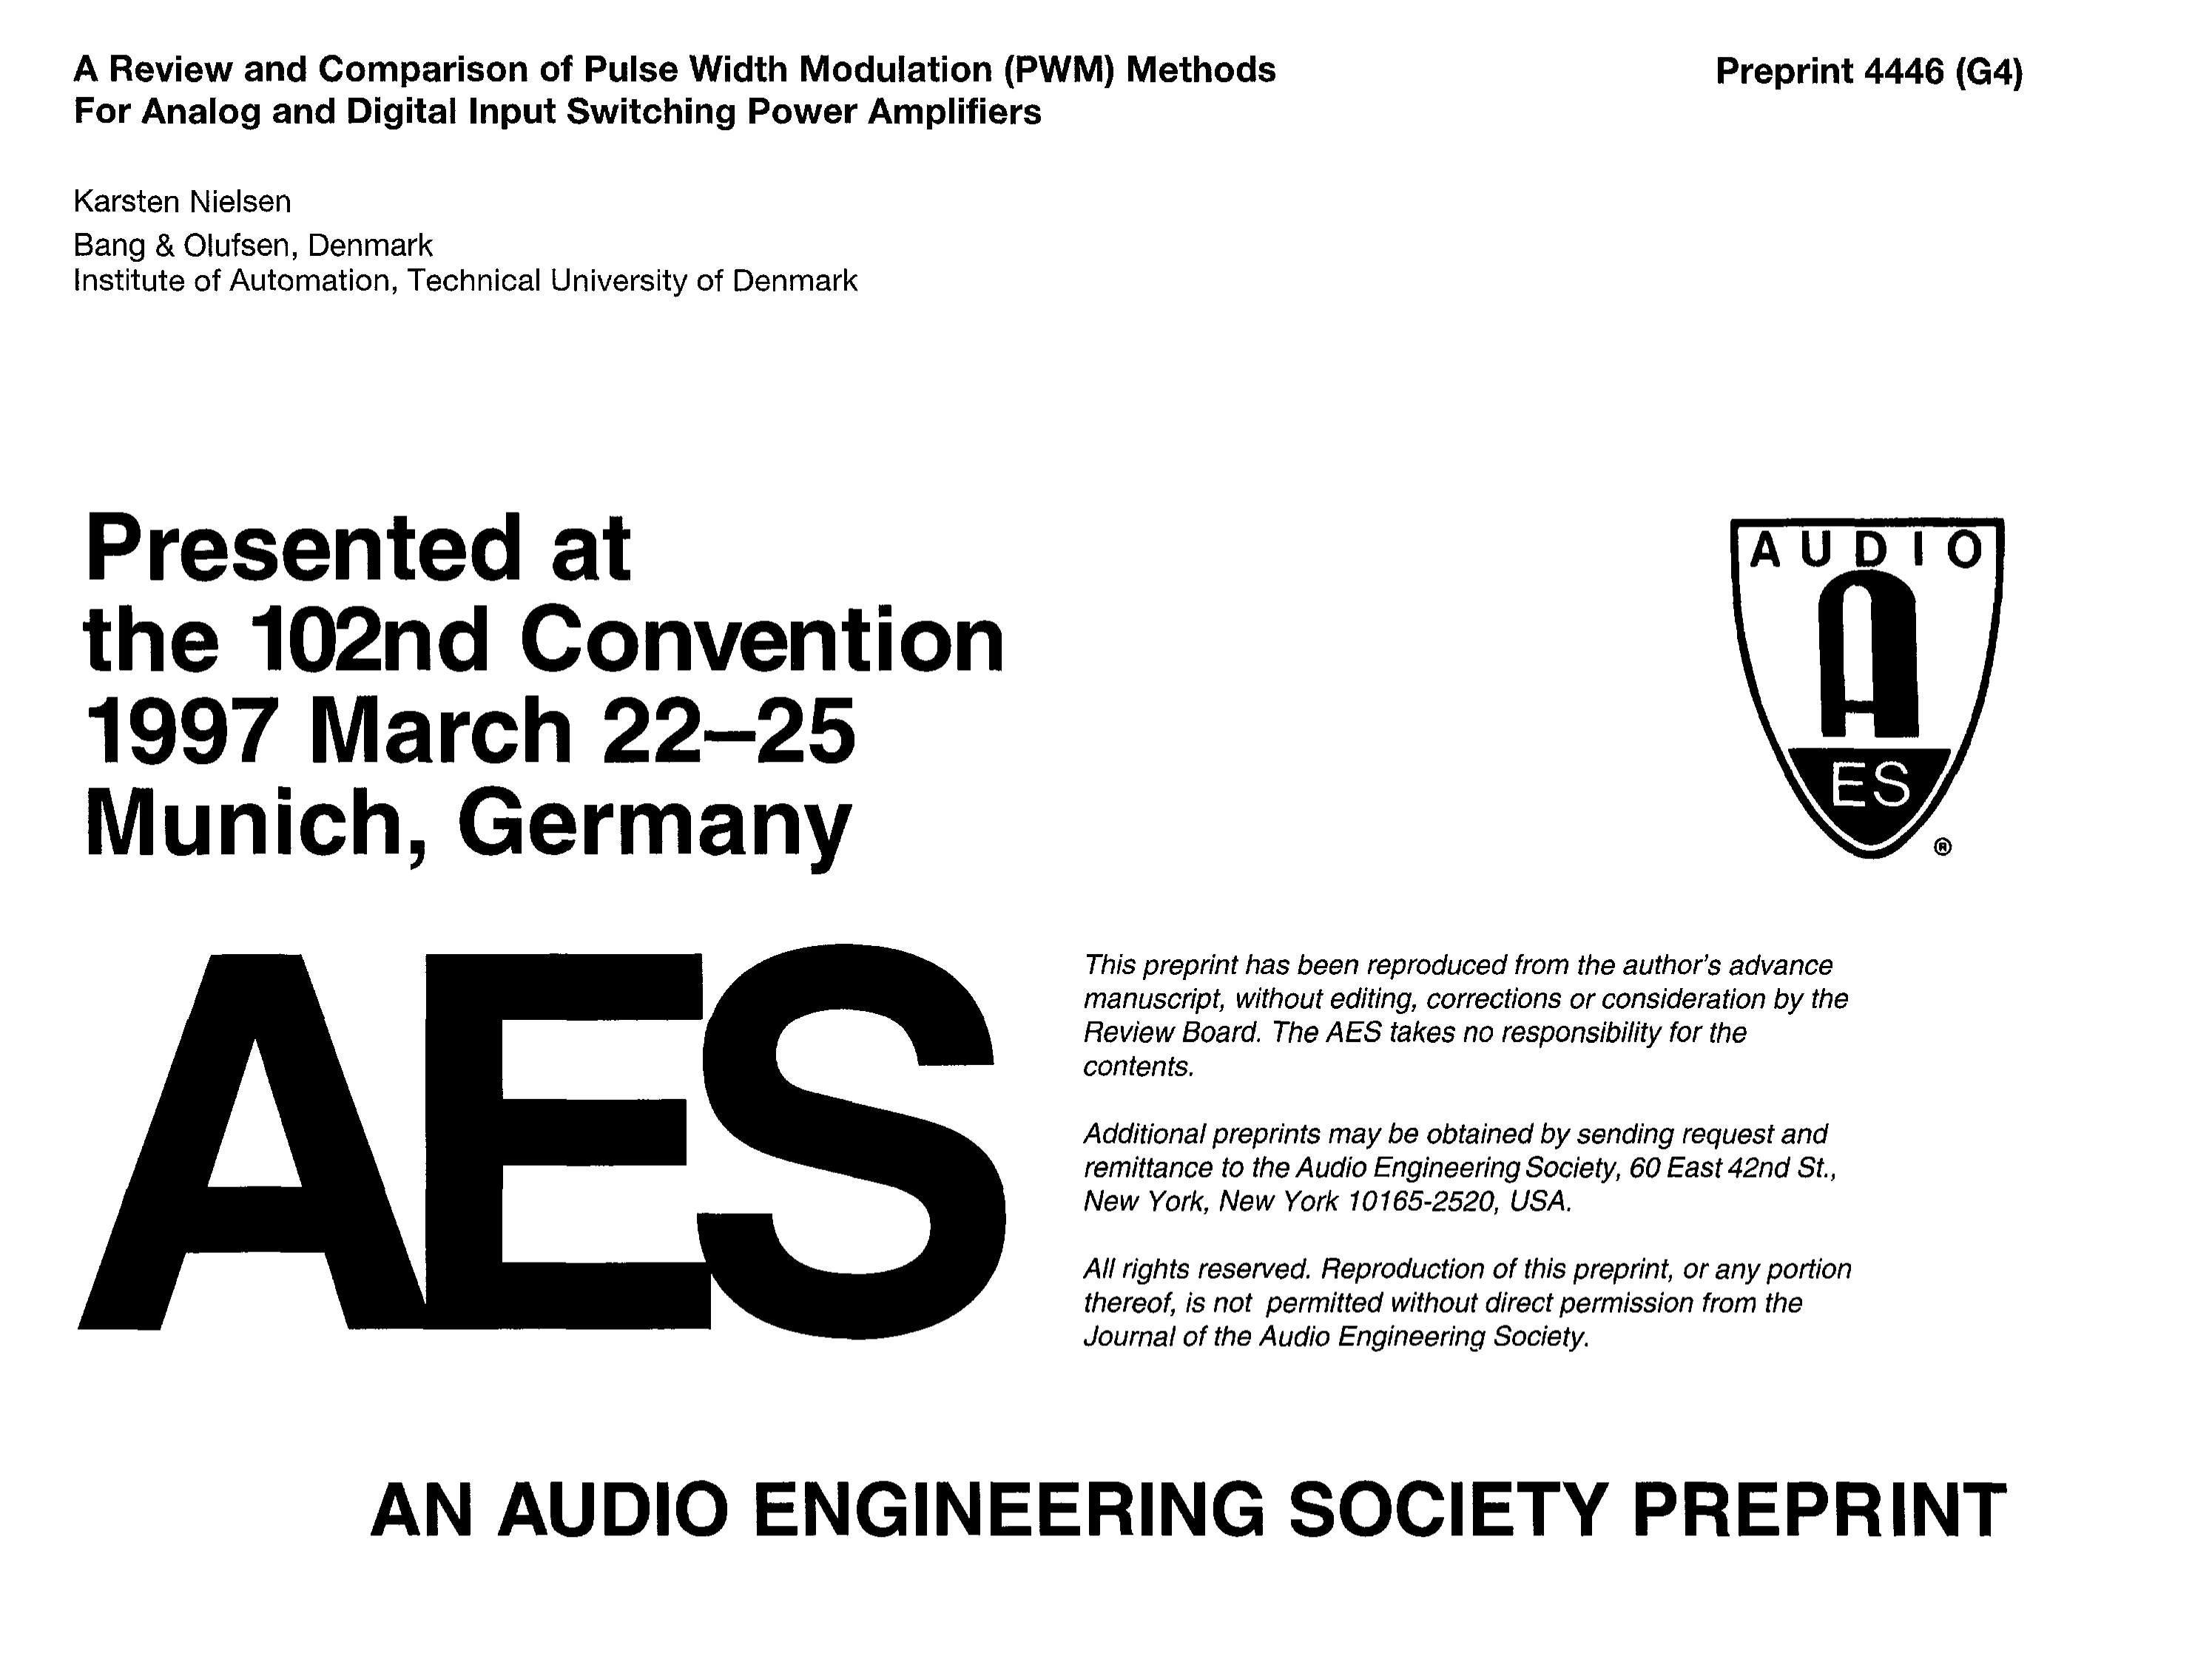 AES E-Library » A Review and Comparison of Pulse-Width